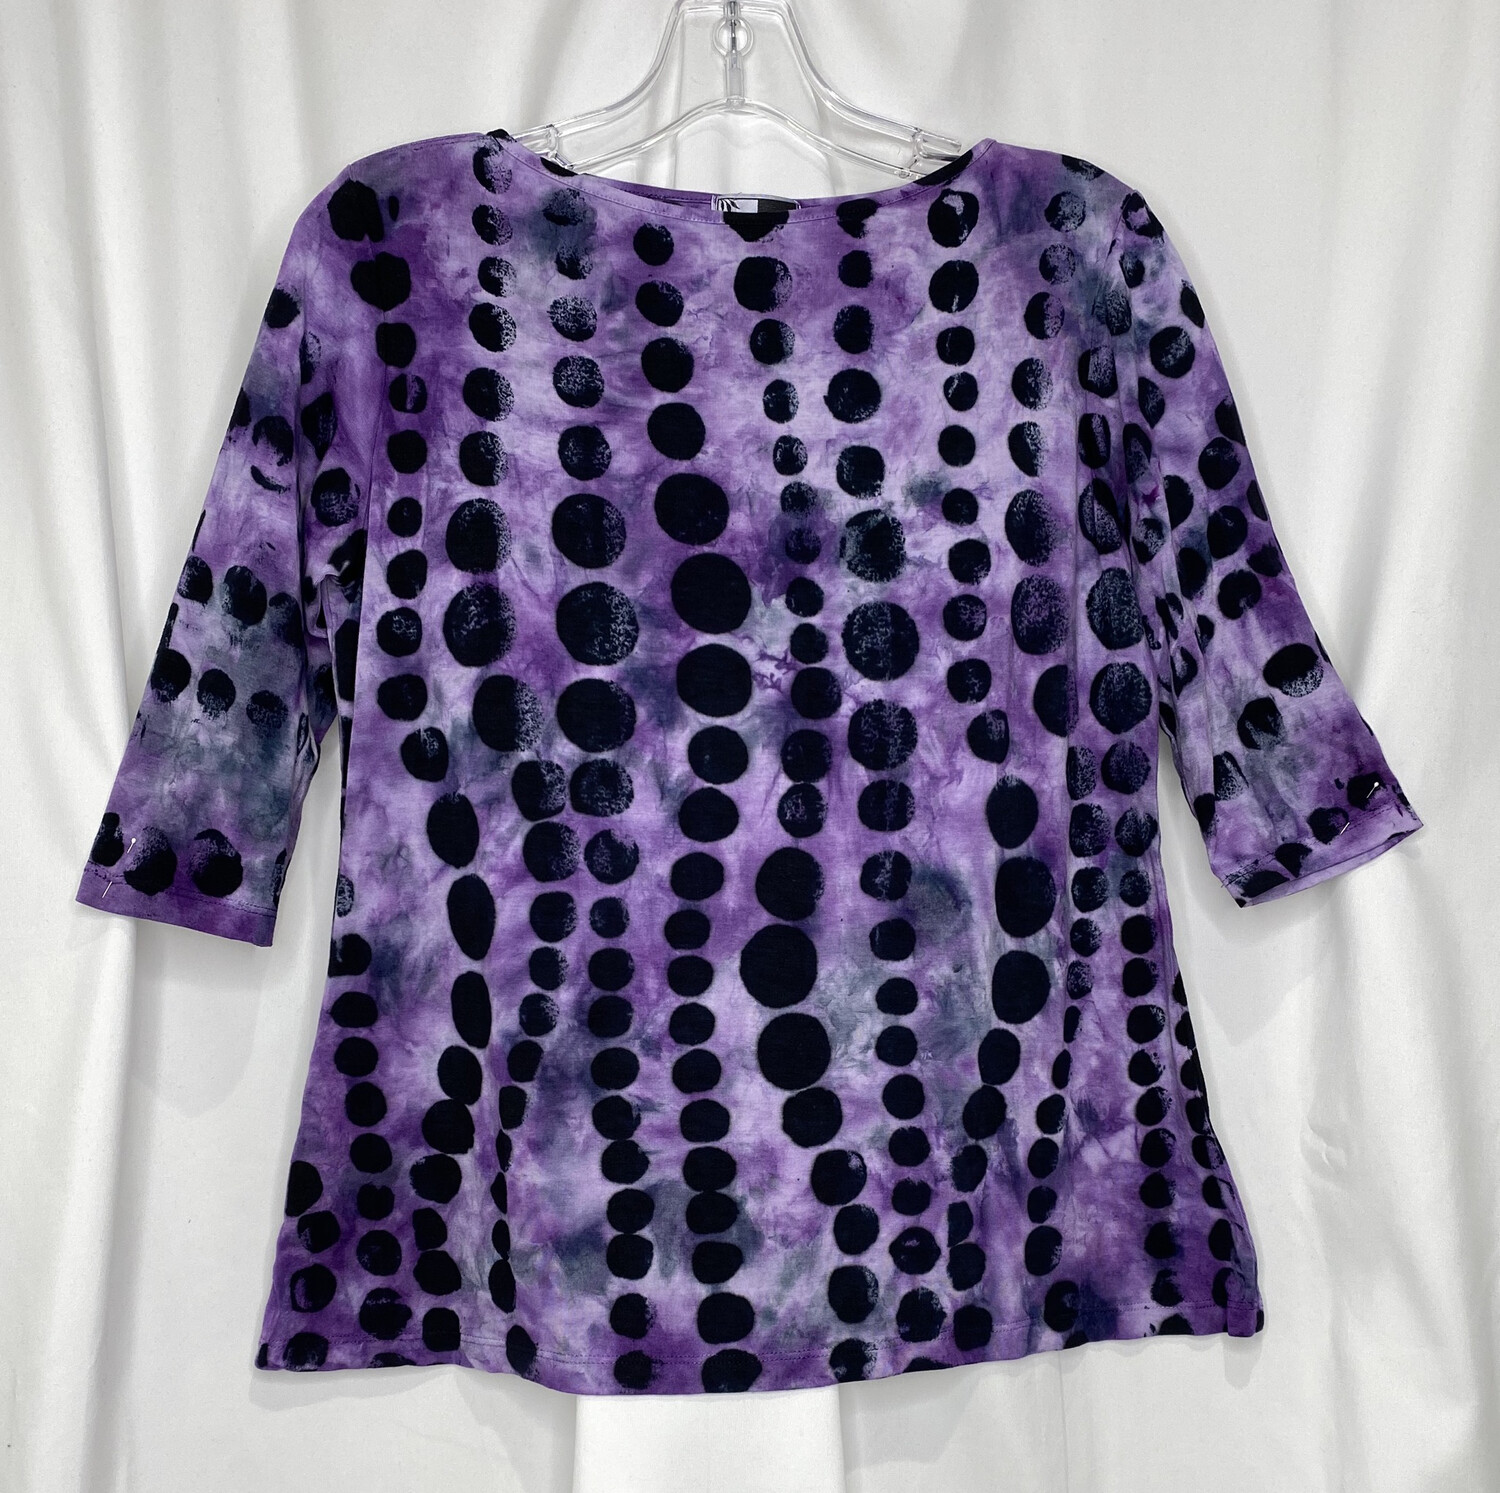 Annie Turbin Purple Dots 3/4 Sleeve Tshirt